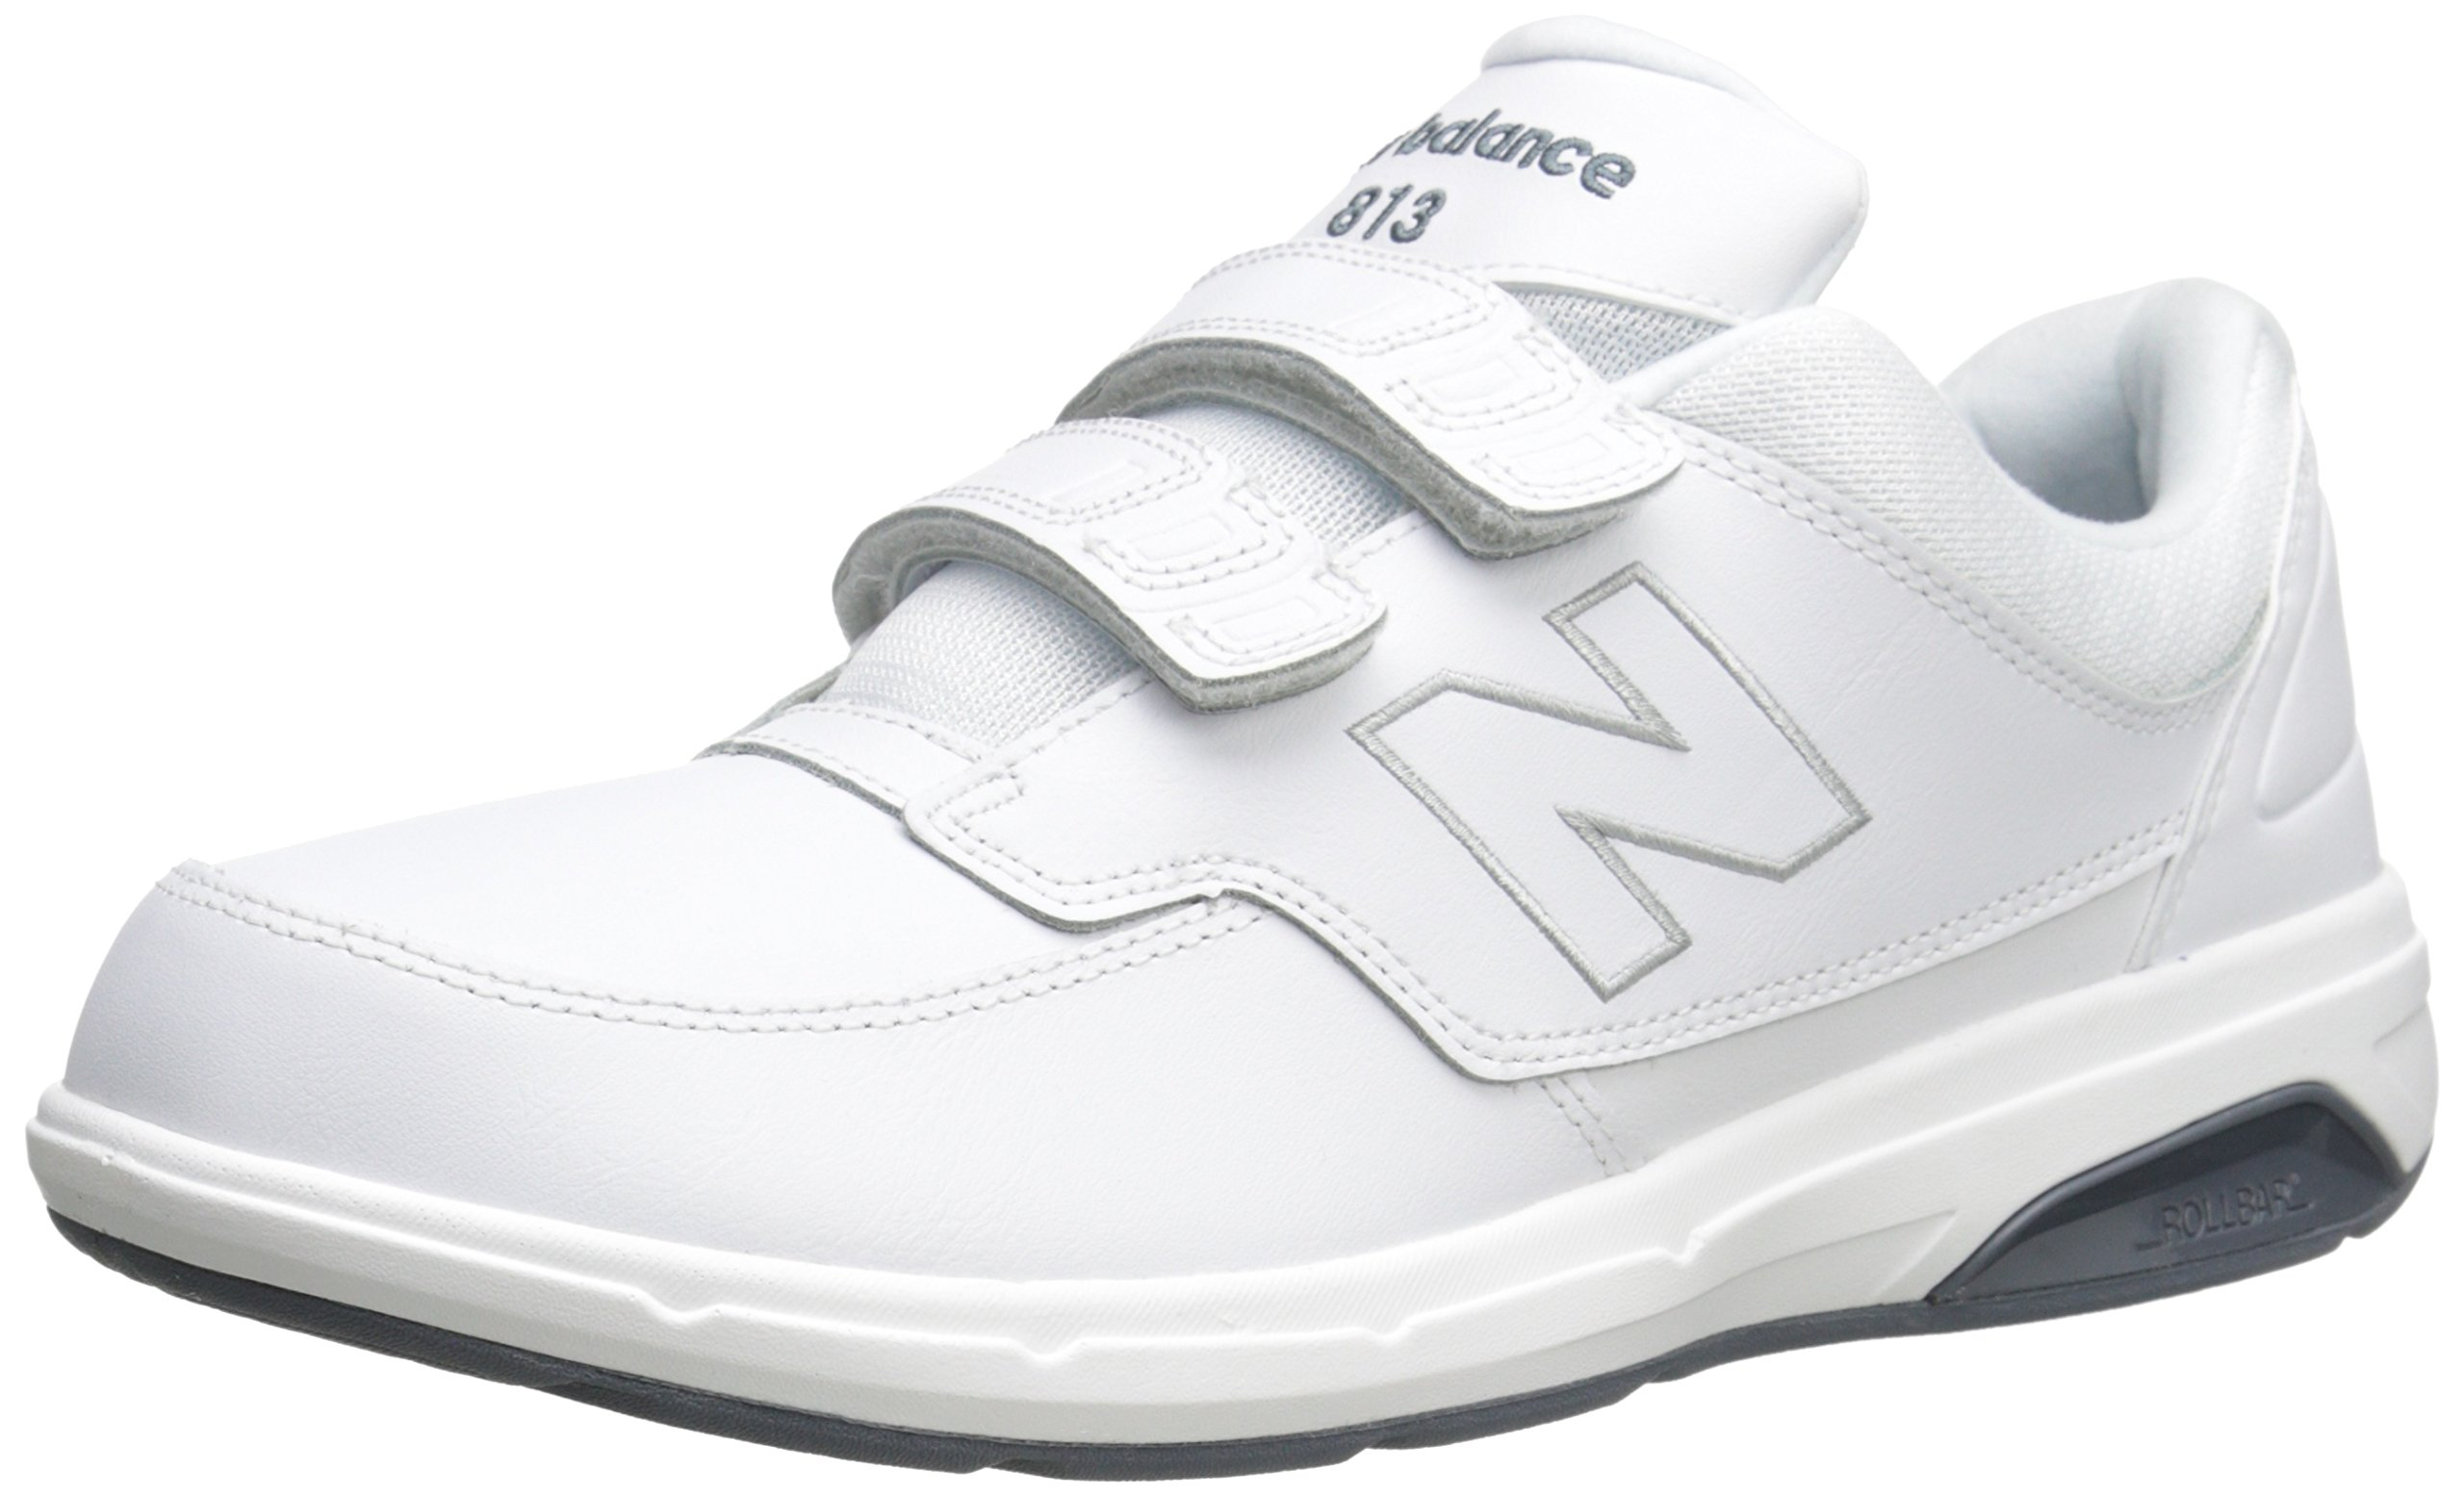 New Balance Men's MW813V1 Hook and Loop Walking Shoe, White, 10.5 2E US by New Balance